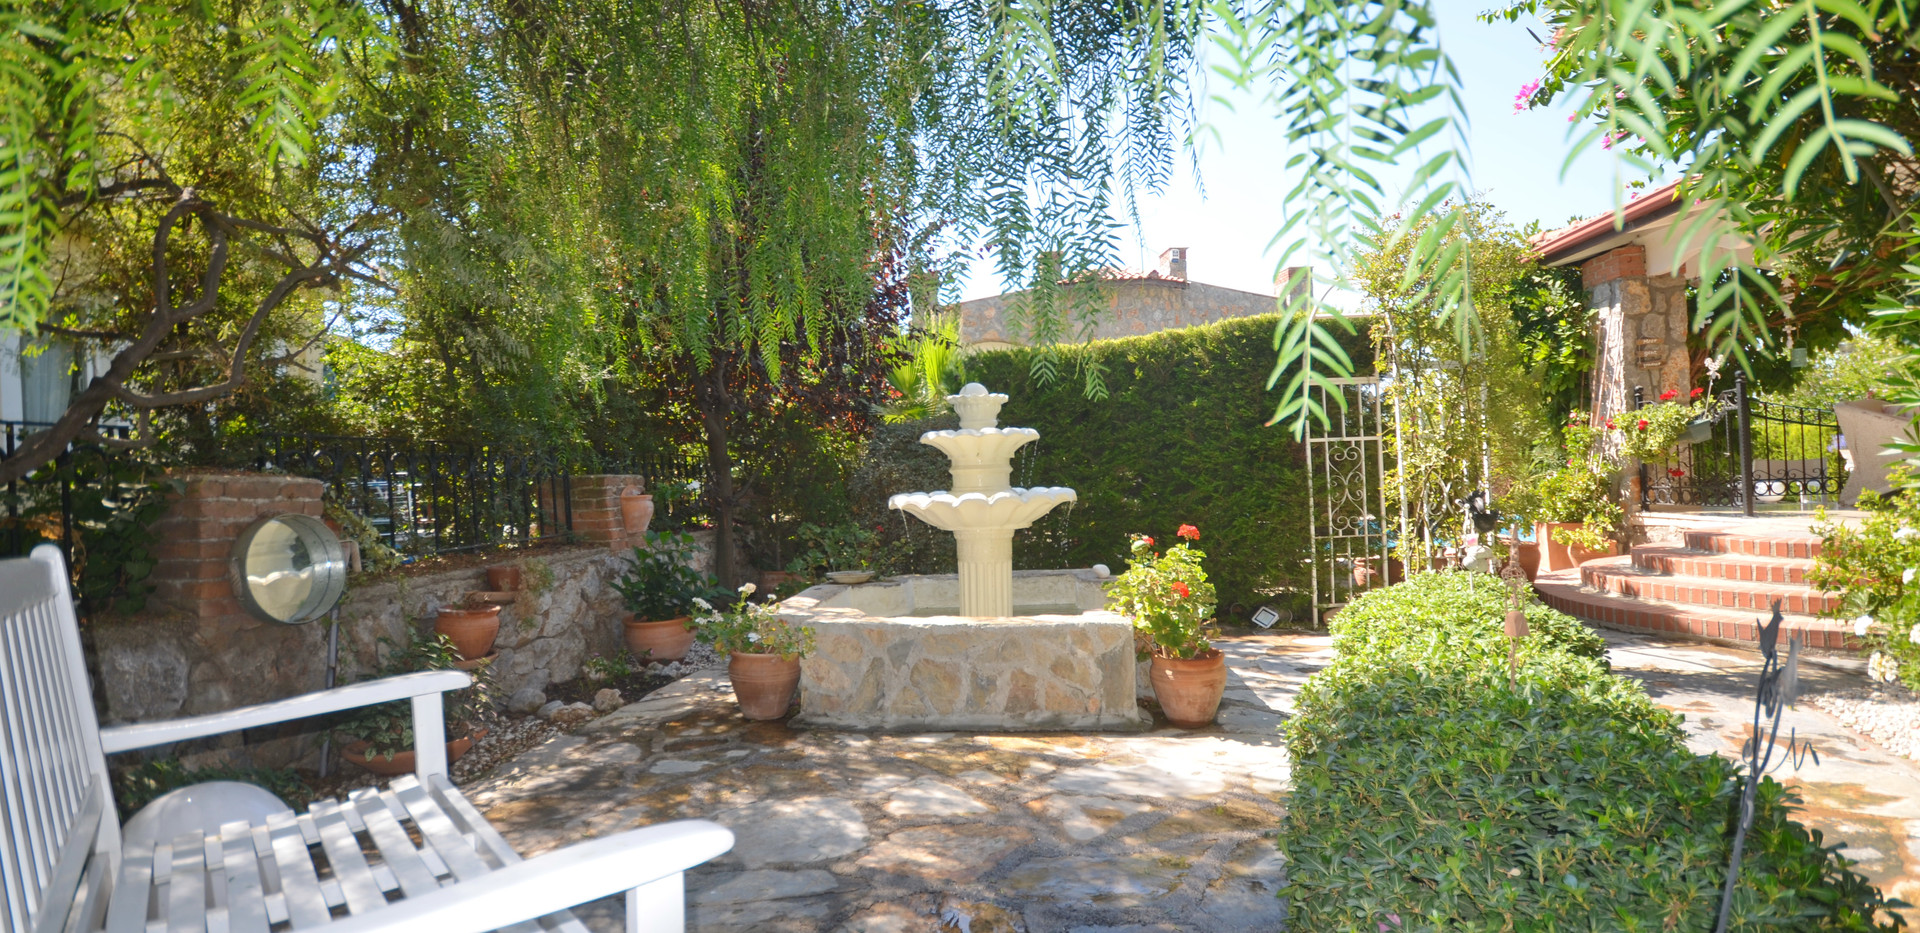 Water Features/Landscaped Gardens